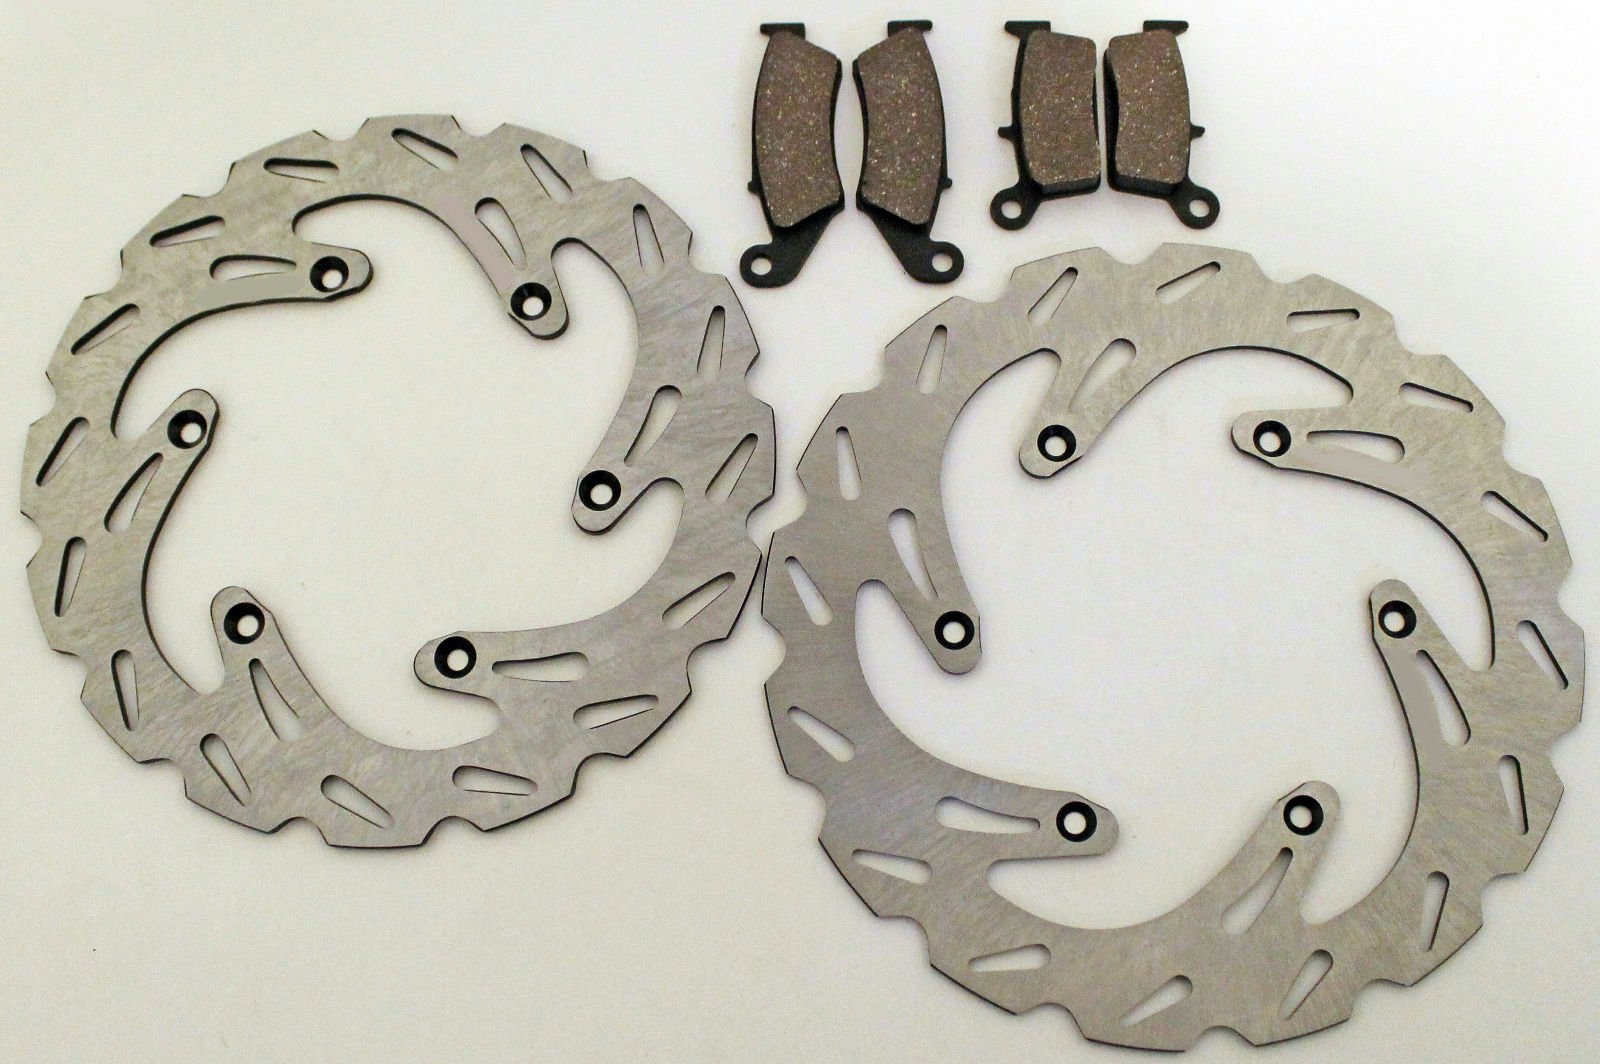 Suzuki 1999-2005 RM125/RM250 Front And Rear Brake Pads And Sport Brake Rotors